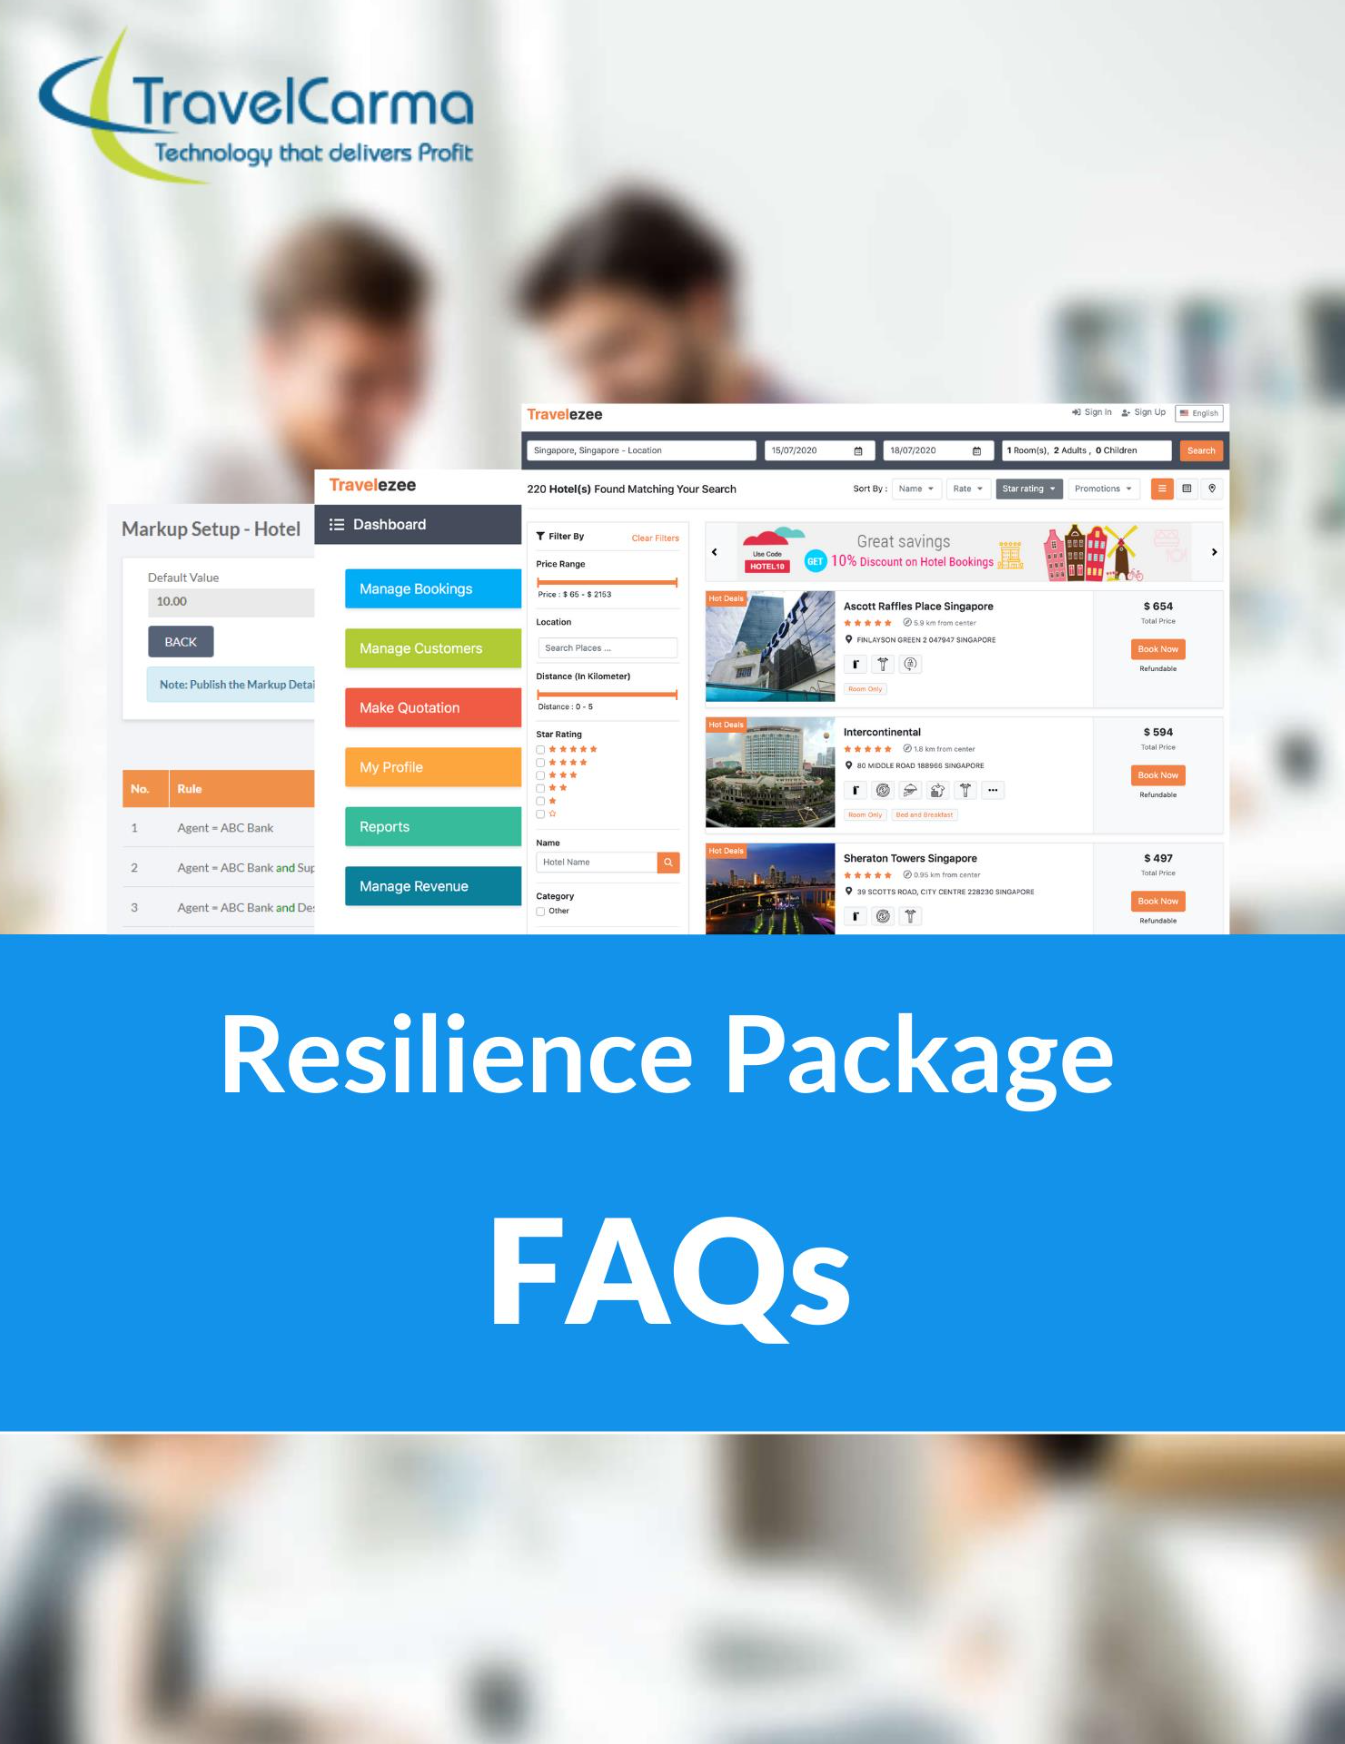 TravelCarma Resilience Package FAQs